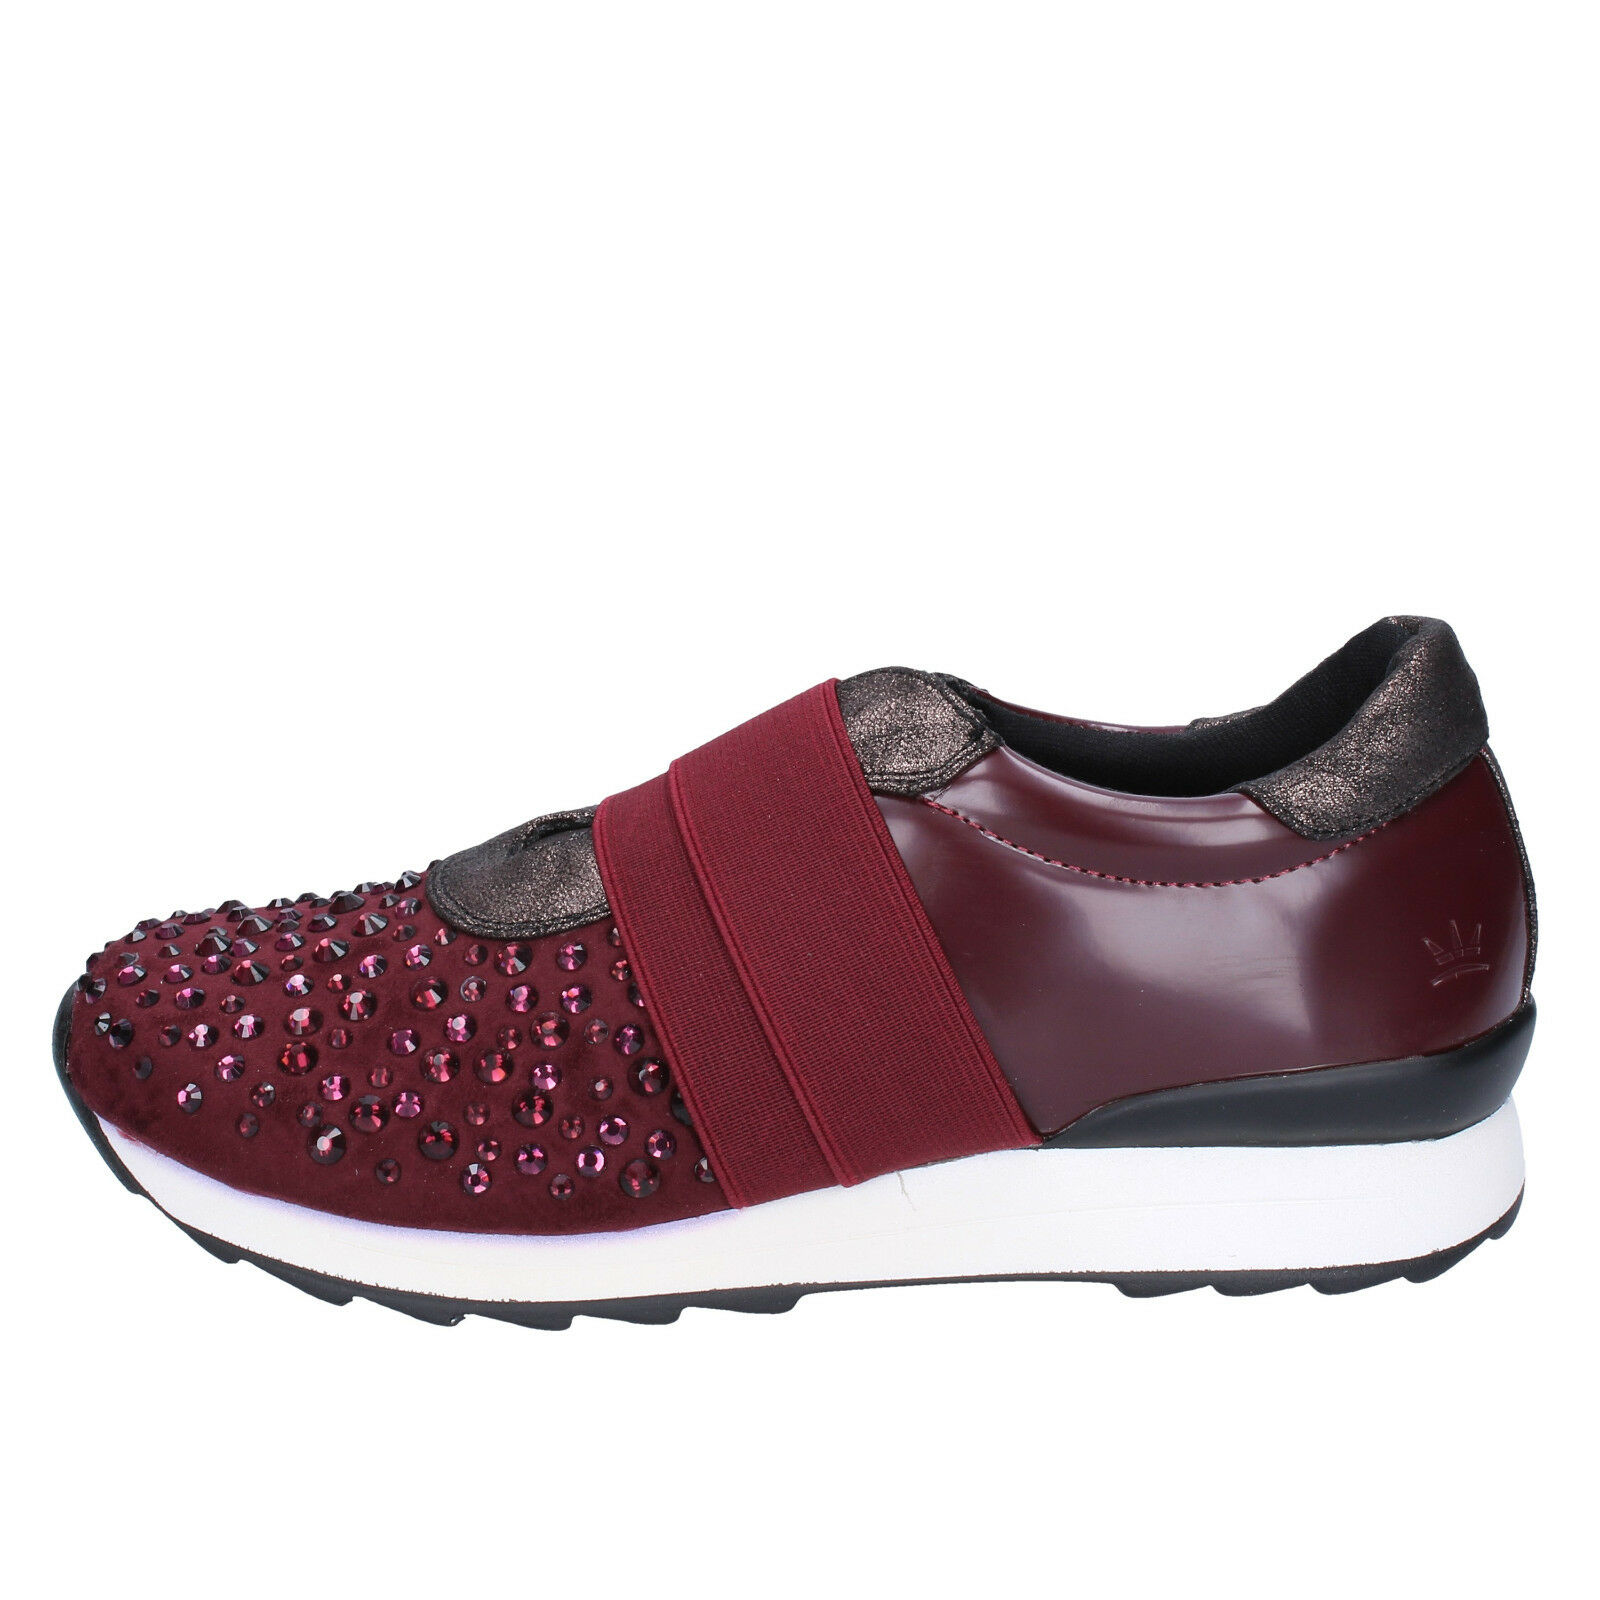 EU donna FRANCESCO MILANO 39 EU  slip on bordeaux pelle camoscio BX338-39 b194a9